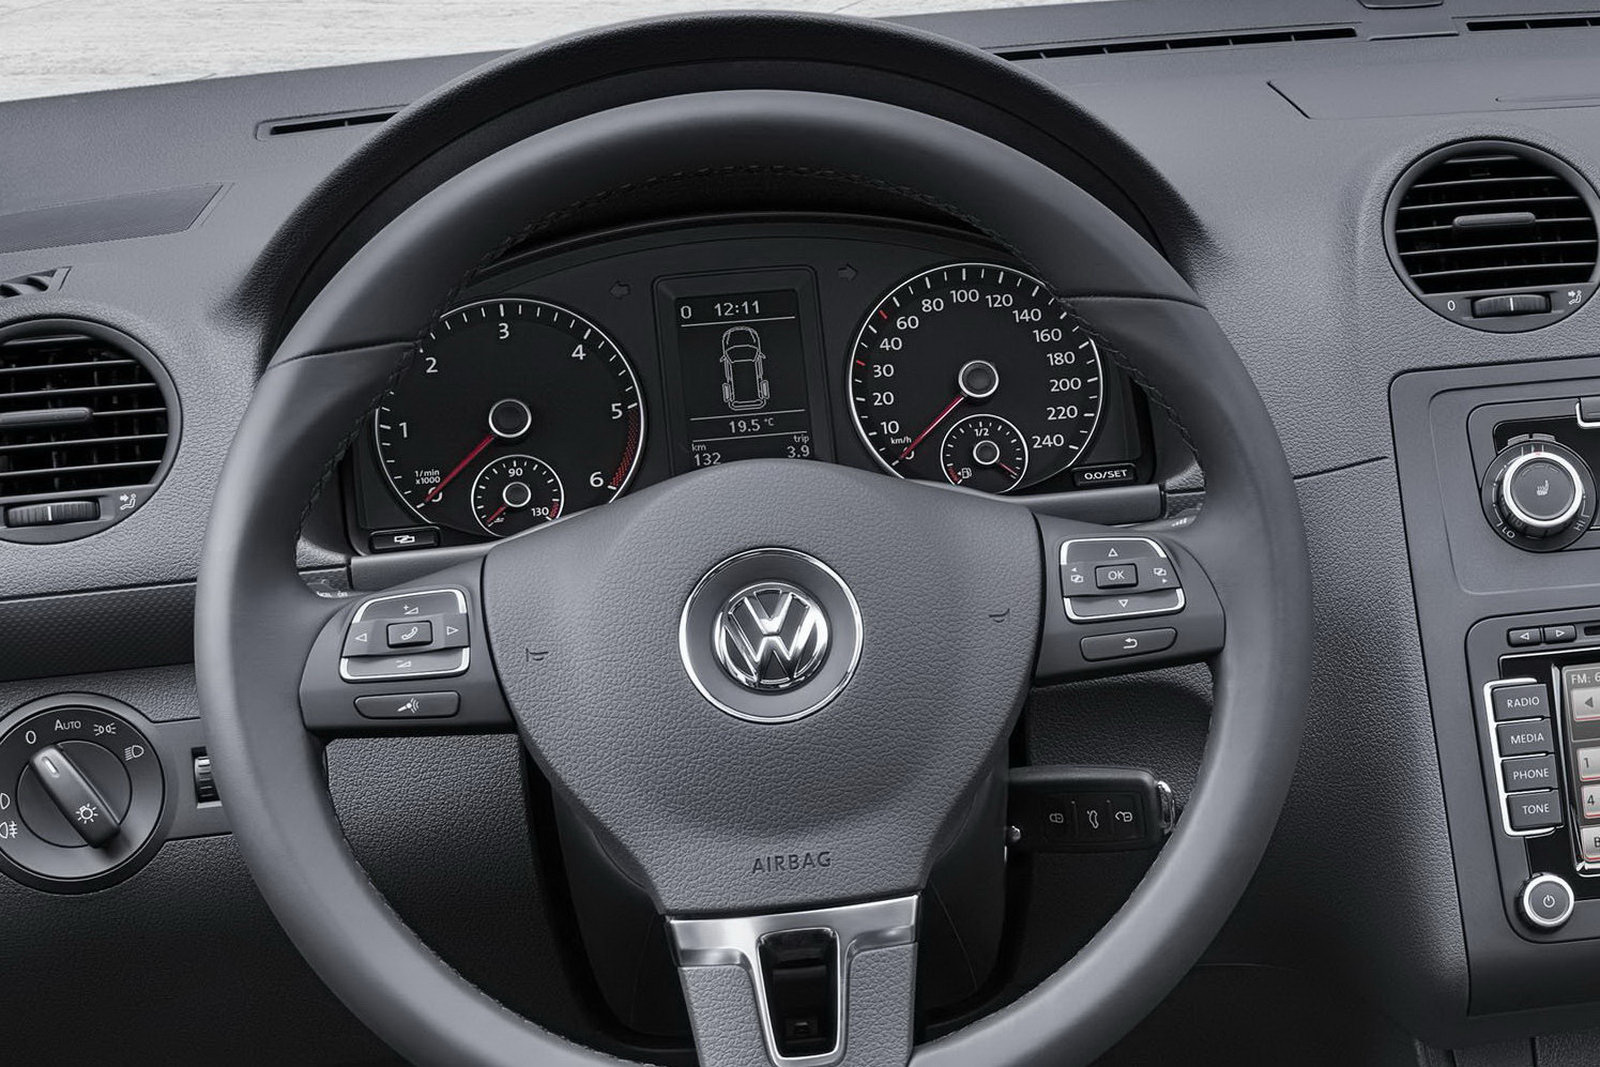 The 2011 Volkswagen Caddy price starts at 13,595 Euro and the first